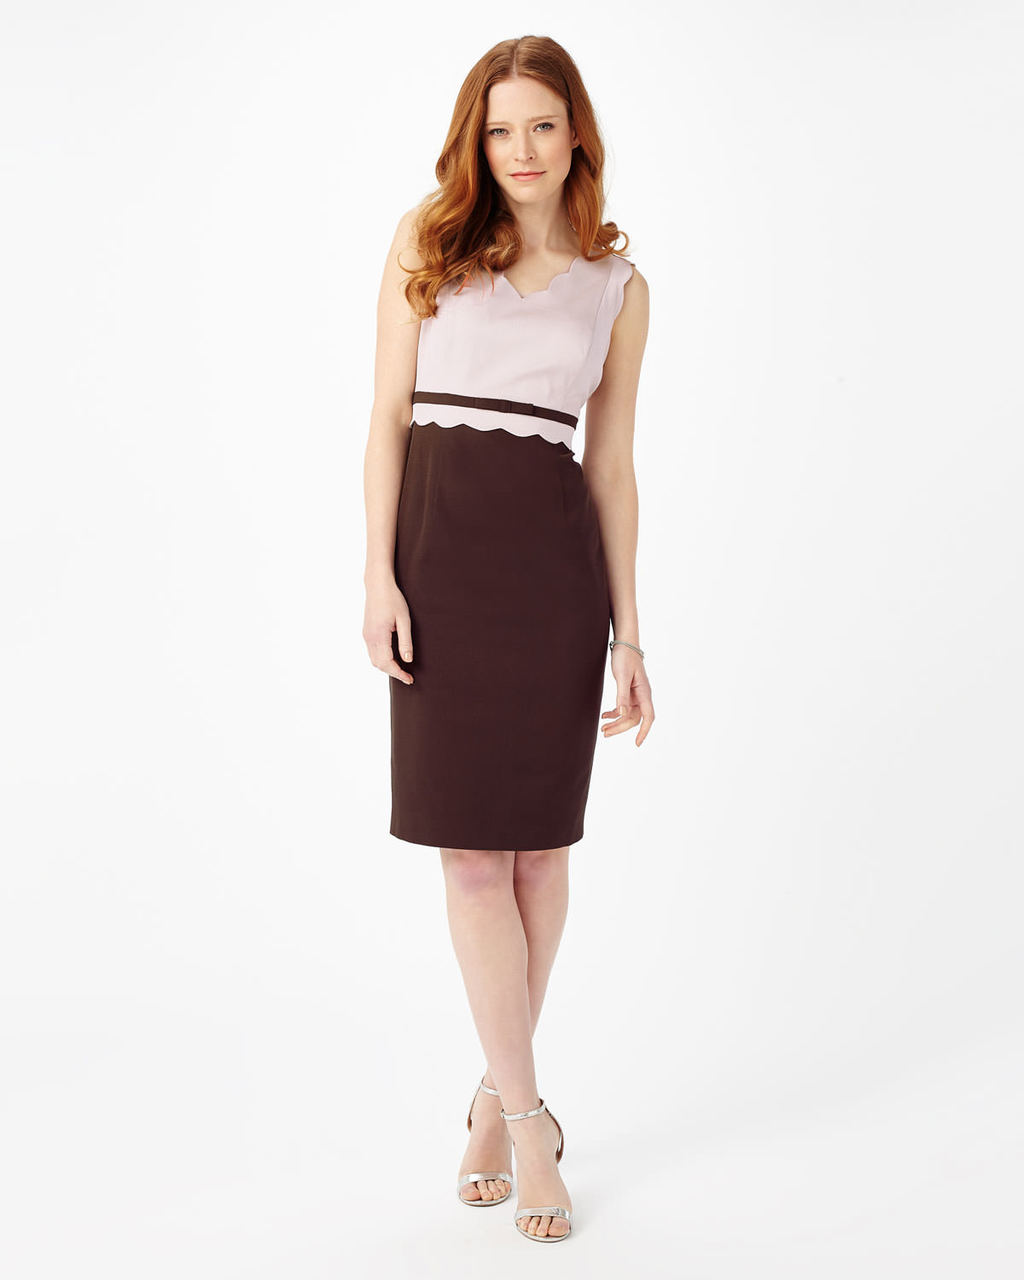 Florence Scallop Dress - style: shift; neckline: v-neck; fit: tailored/fitted; sleeve style: sleeveless; secondary colour: blush; predominant colour: burgundy; occasions: evening; length: on the knee; fibres: viscose/rayon - stretch; sleeve length: sleeveless; texture group: crepes; pattern type: fabric; pattern size: standard; pattern: colourblock; embellishment: lace; multicoloured: multicoloured; season: s/s 2016